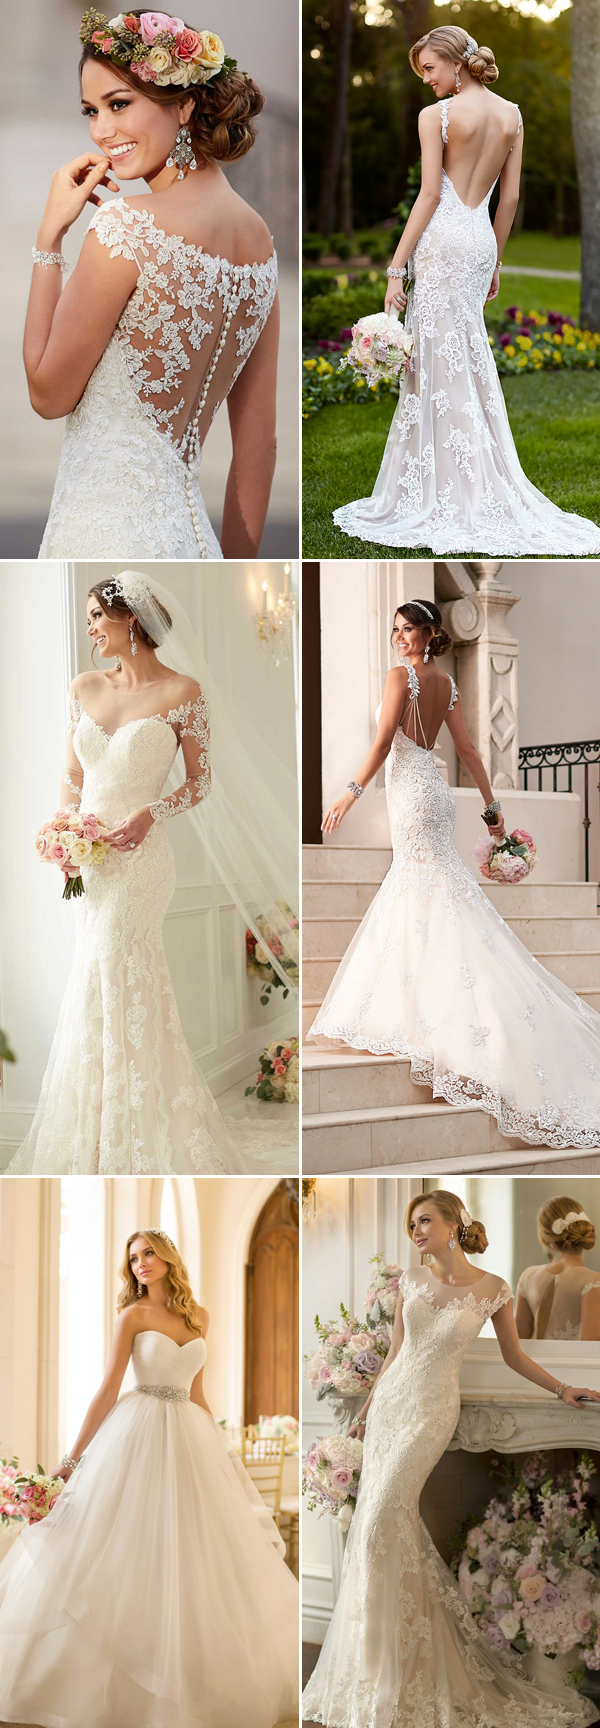 Top 10 Australian Wedding Dress Designers We Love Praise Wedding